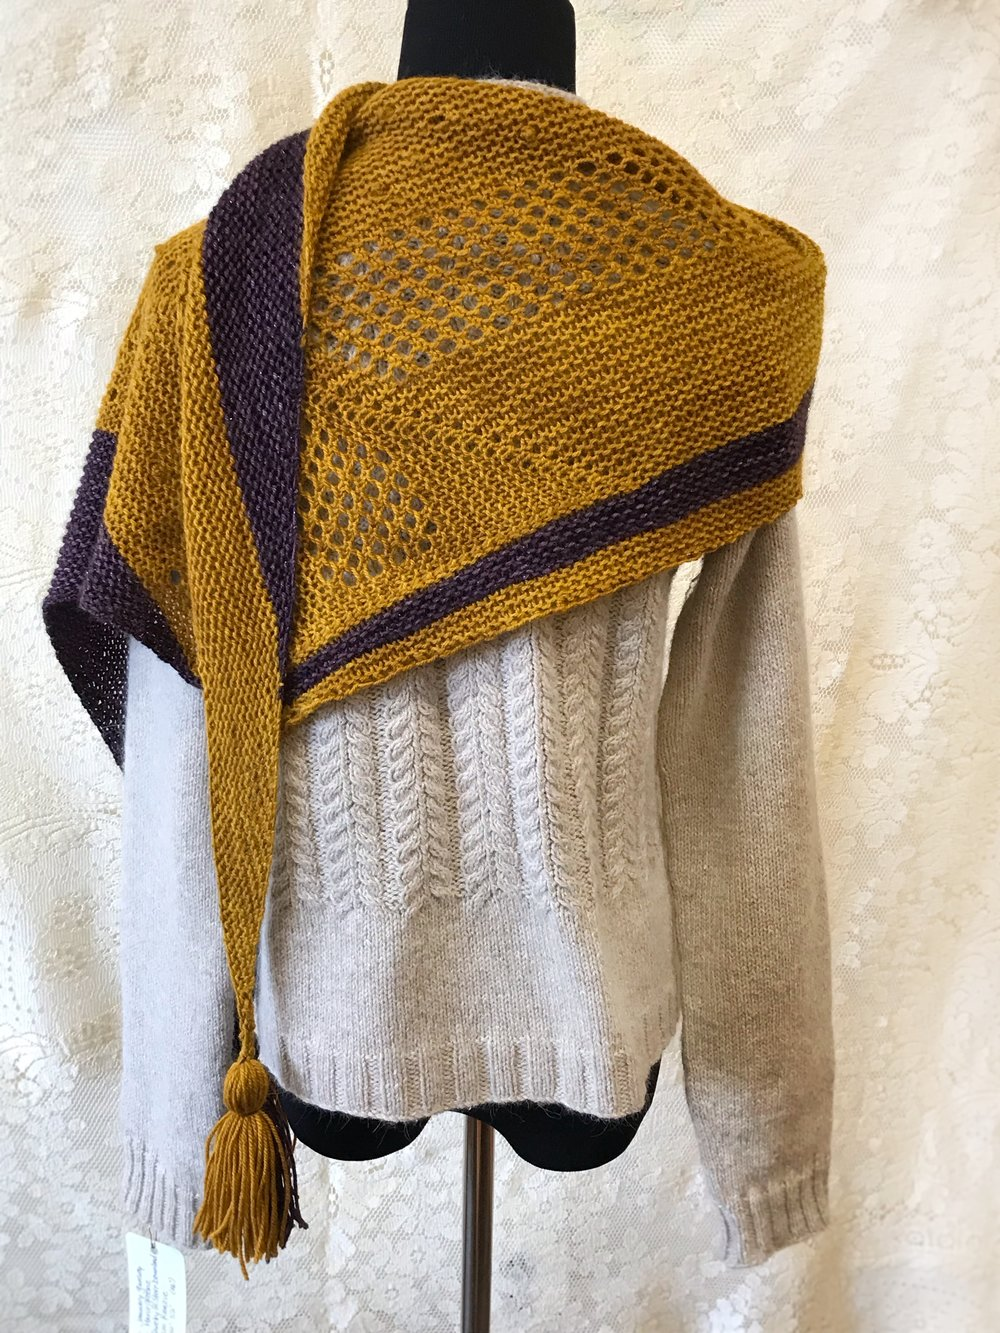 Ravenhill - Tamy Gore's Ravenhill shawl design is finished, and I even made the tassels! The shape is a shallow elongated triangle, and the method of construction is semi-modular, which makes it a fun knit.